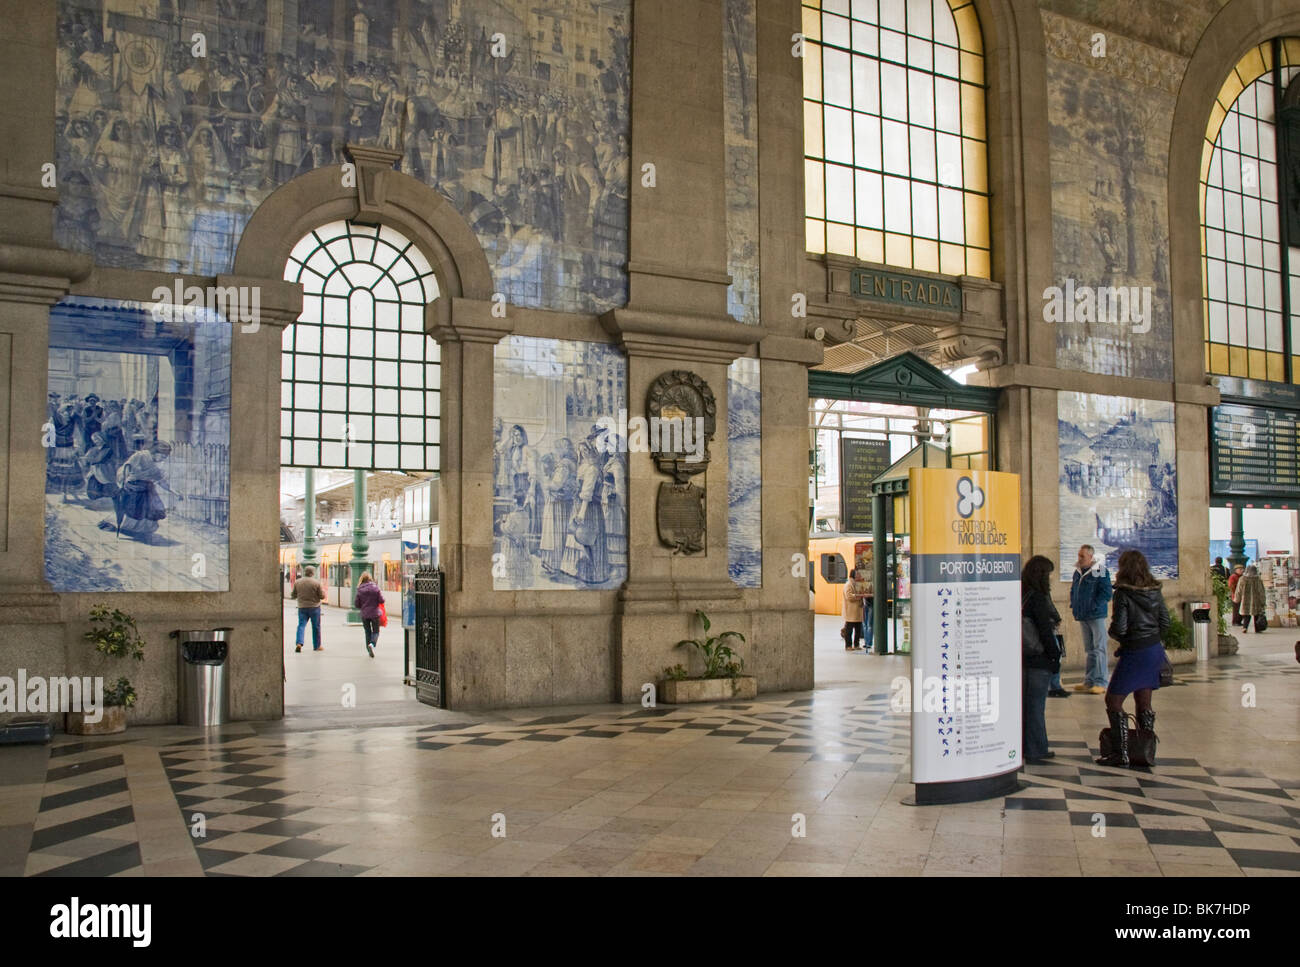 Azulejo (earthenware tiles) tile paintings cover the entry hall of Sao Bento railway station, Porto (Oporto), Portugal, - Stock Image